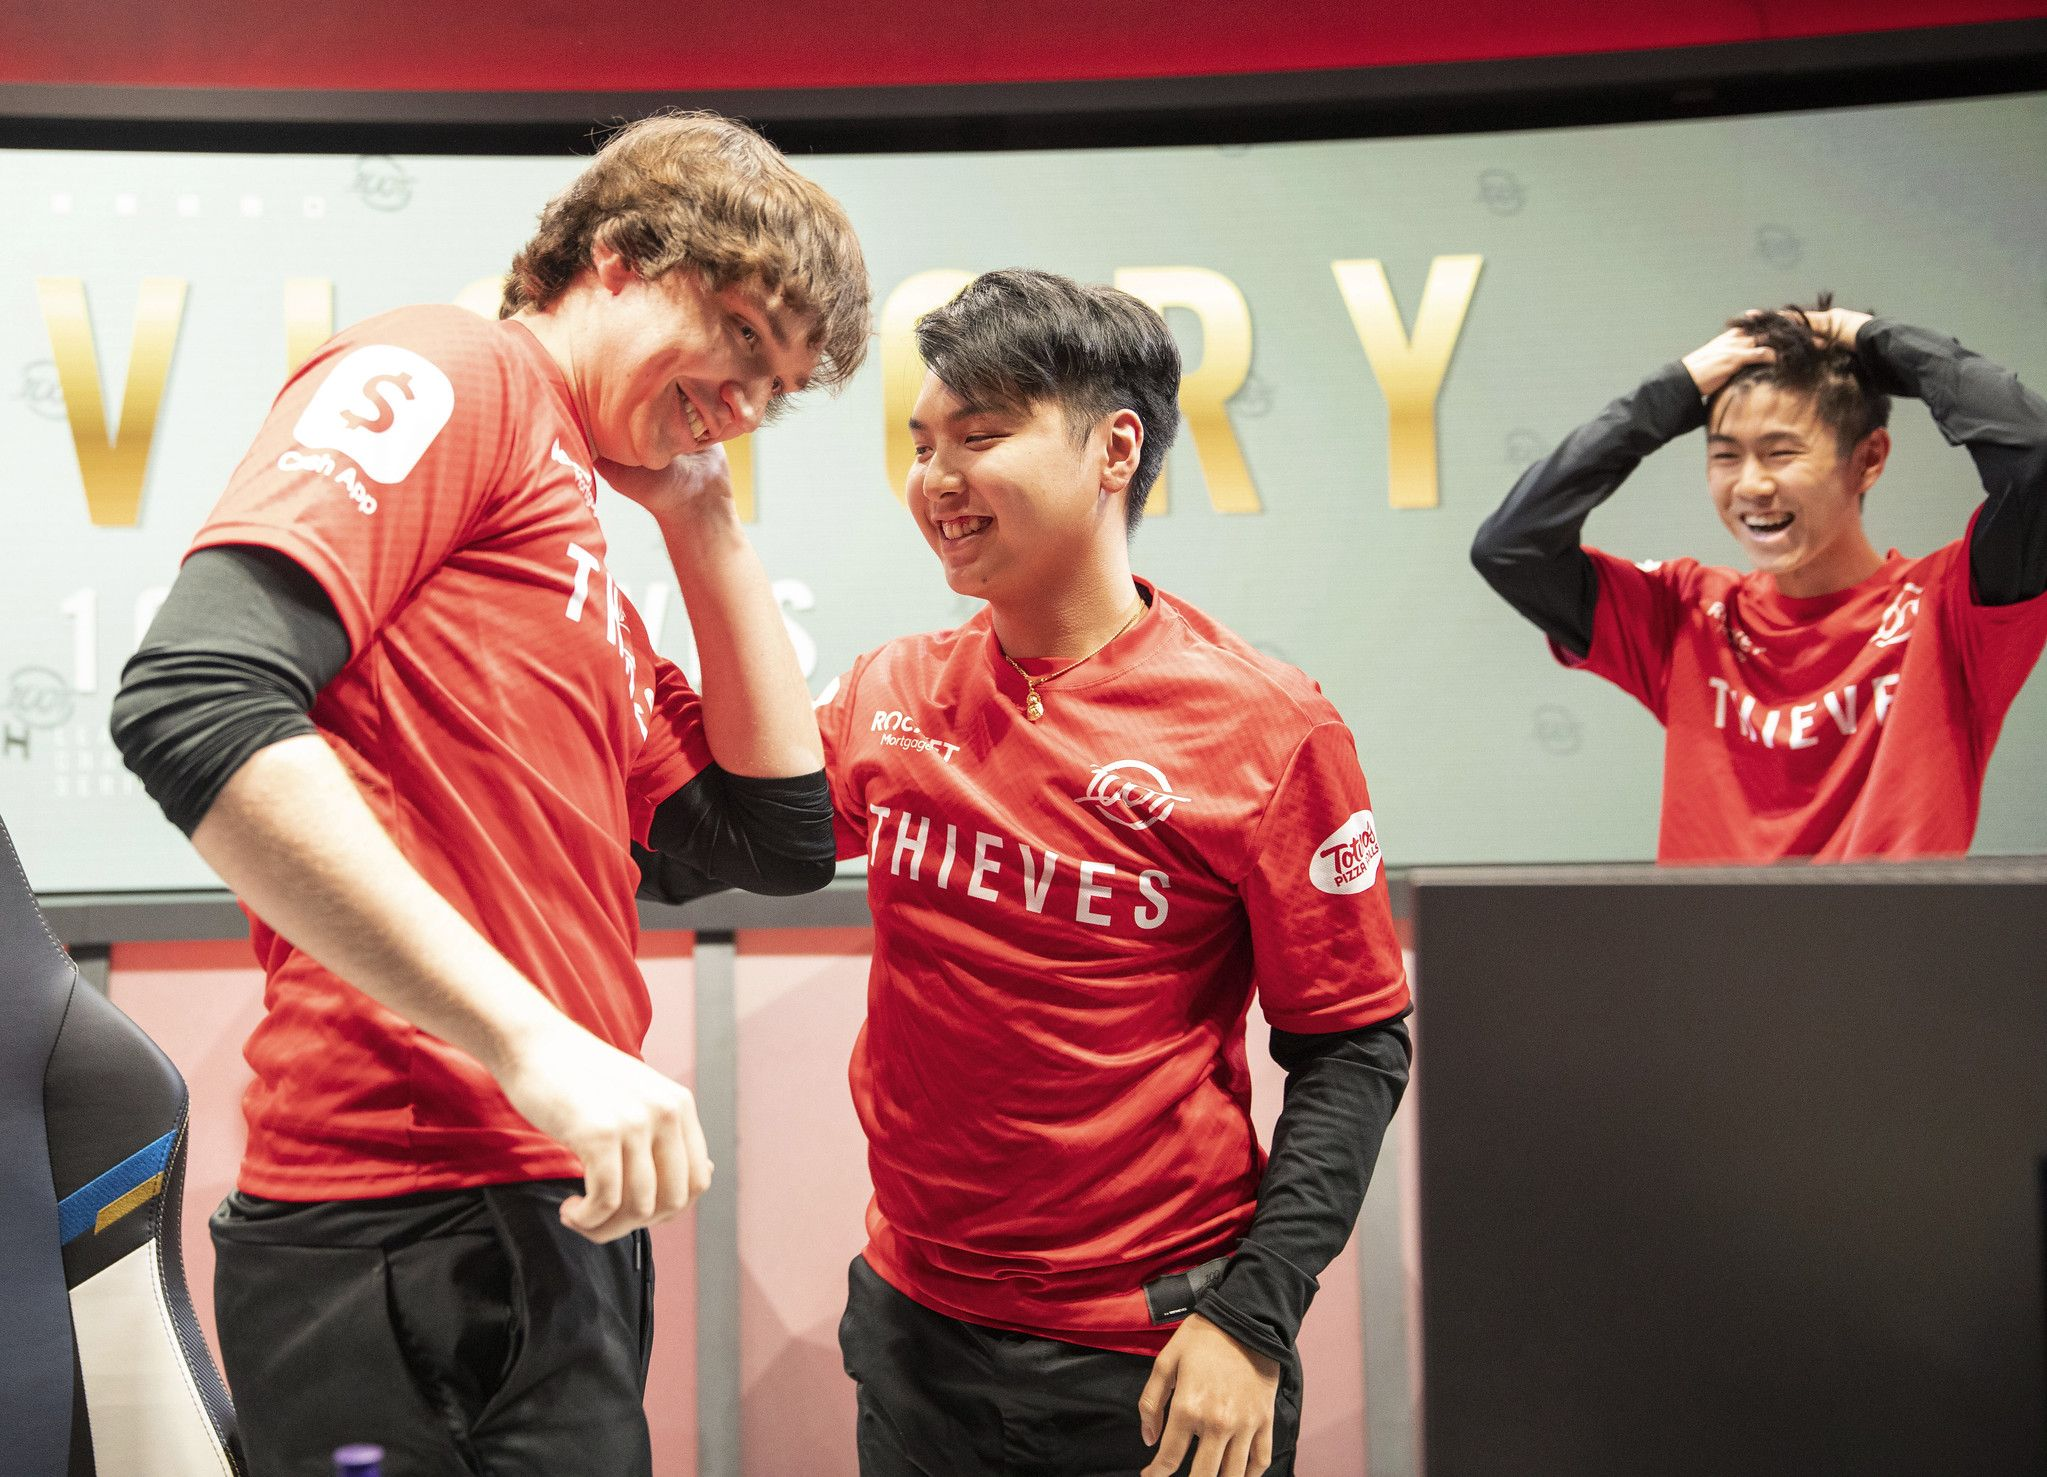 Meteos on stage with Ryoma and Stunt in LCS 2020